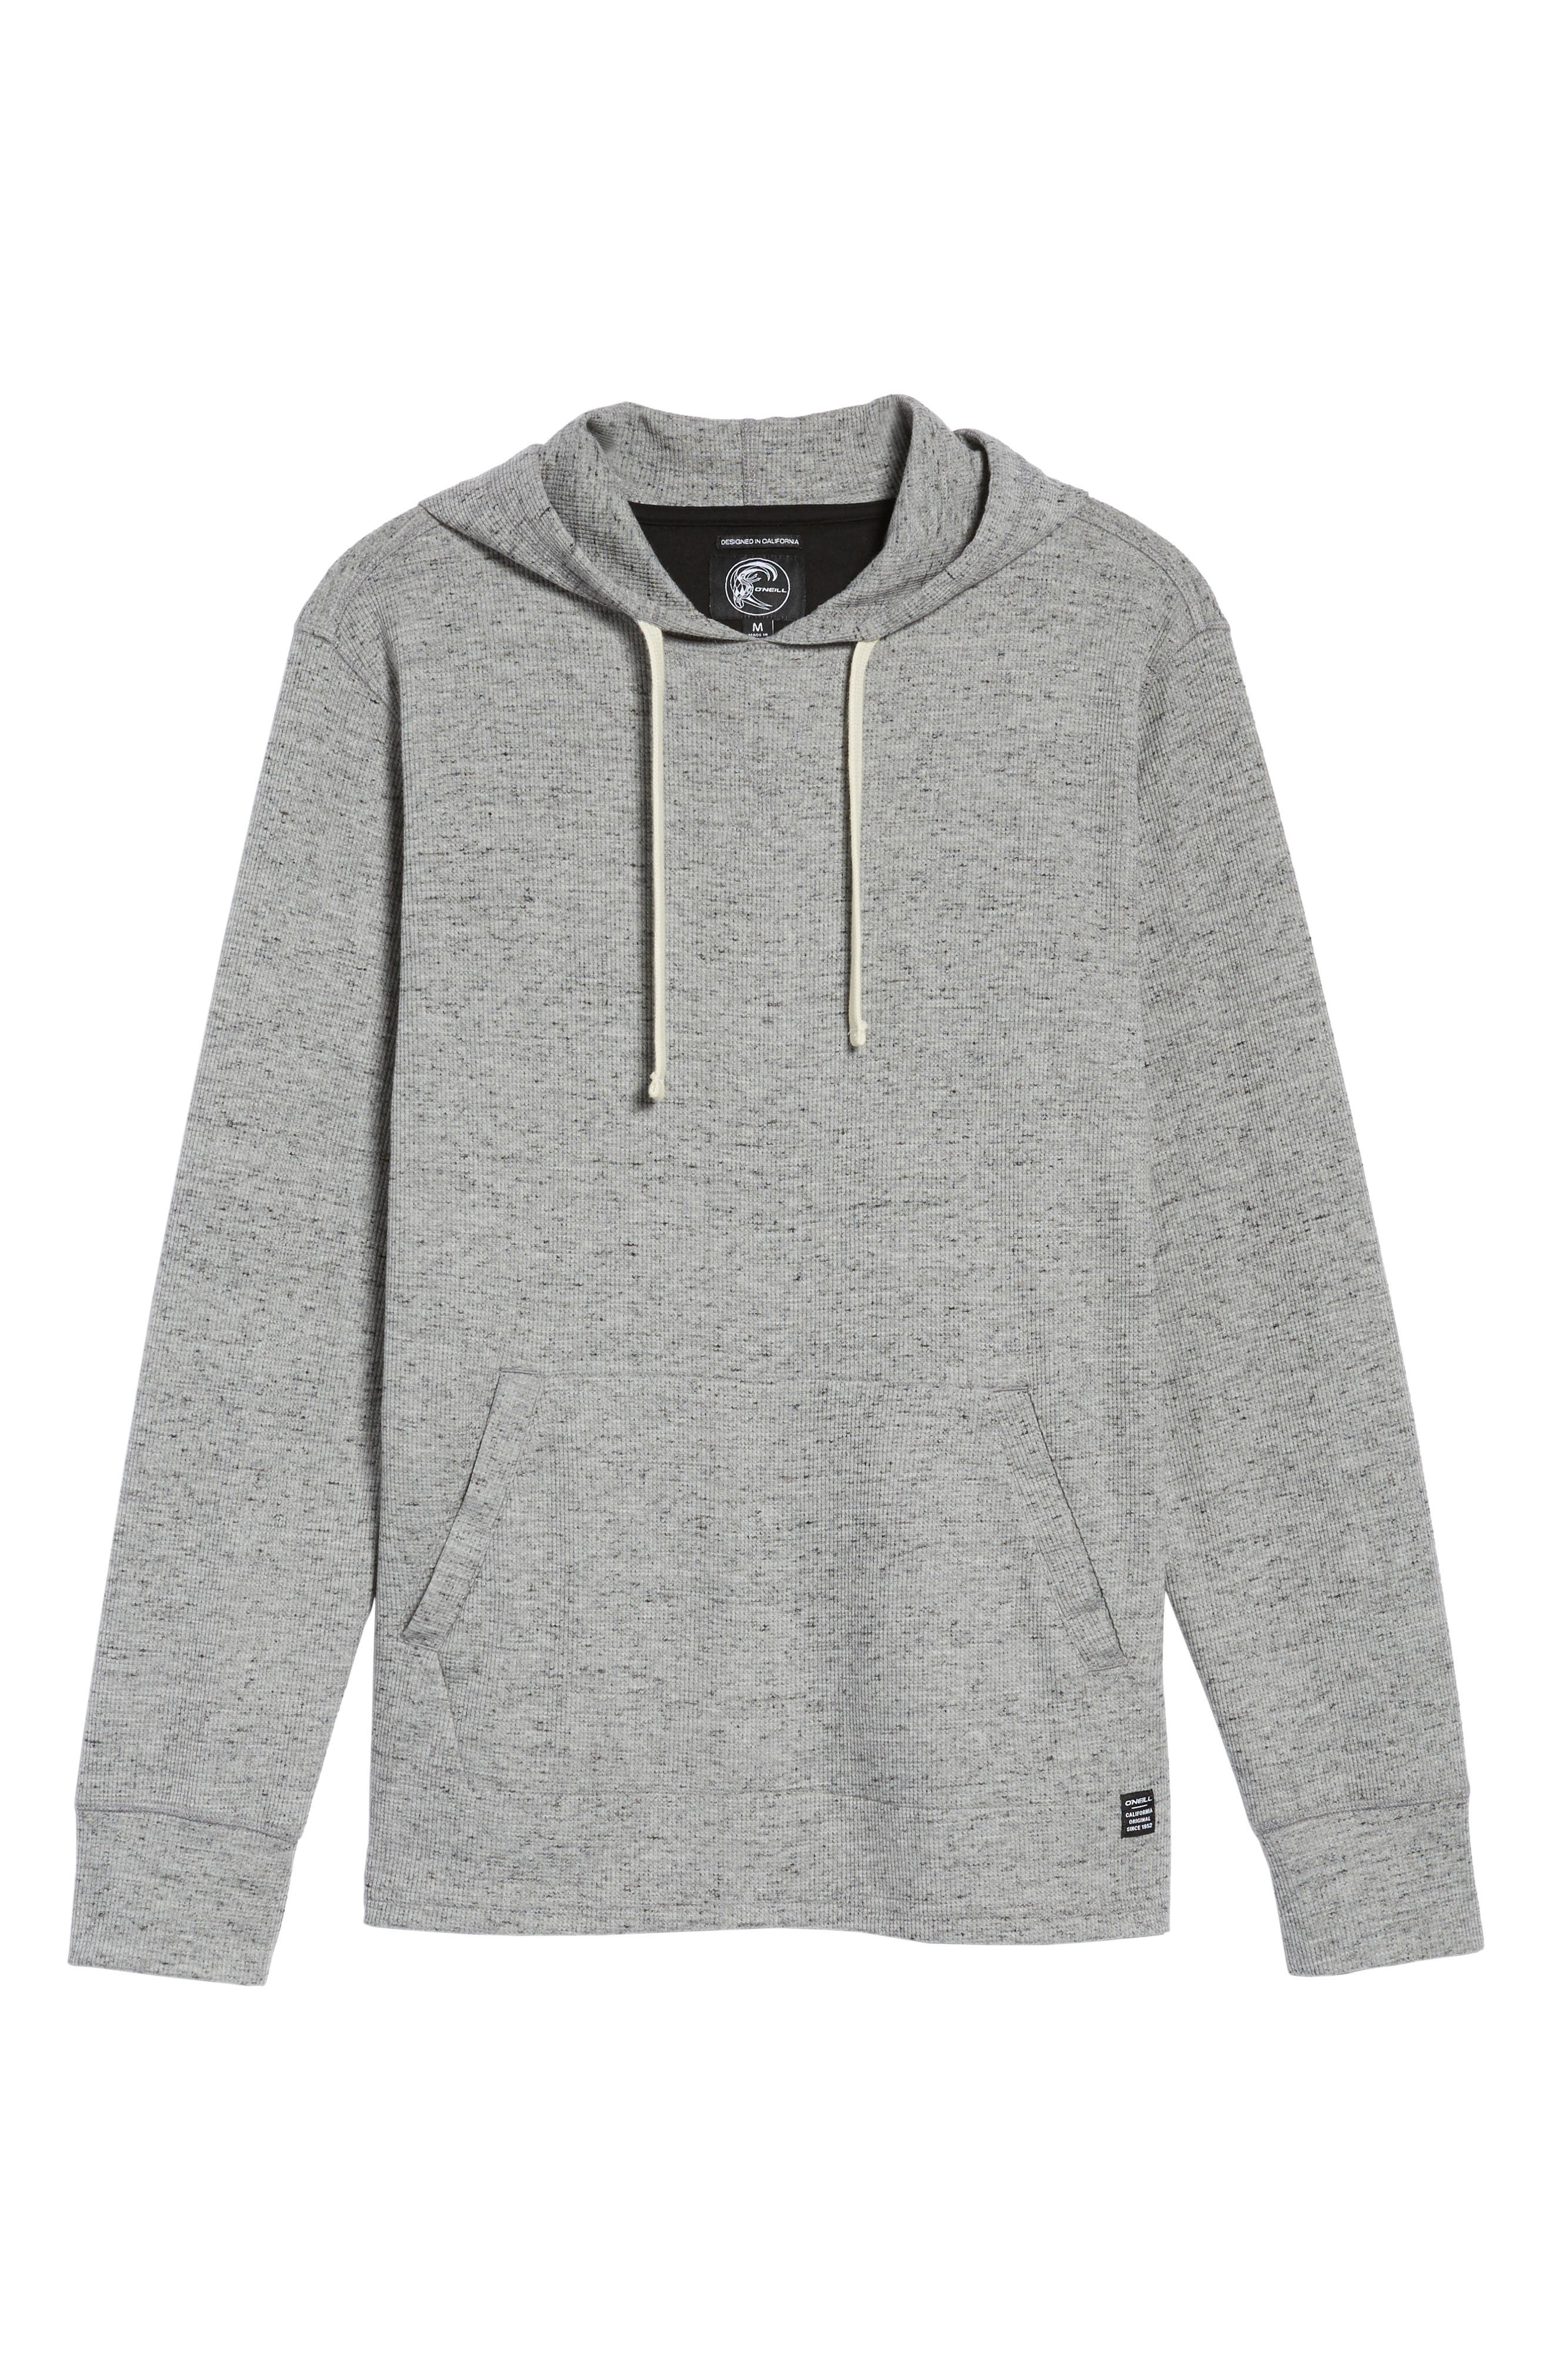 Boldin Thermal Pullover Hoodie,                             Alternate thumbnail 6, color,                             039